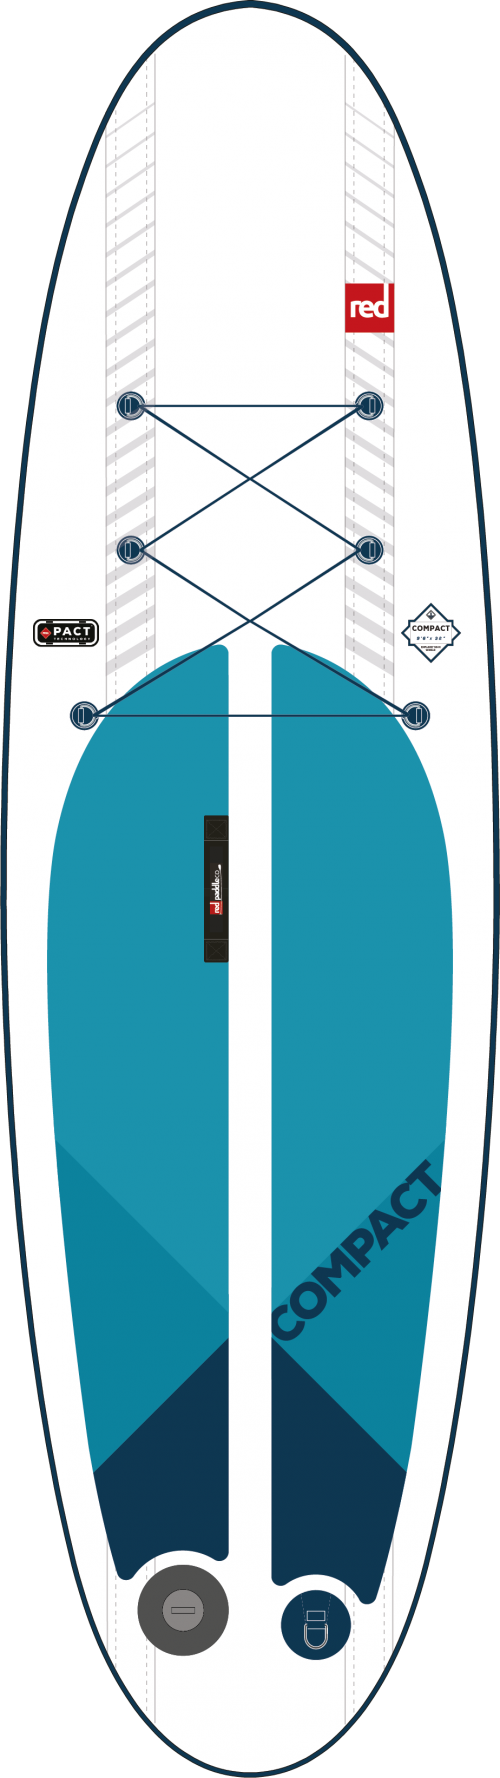 2019 Red Paddle Co. Compact 9ft 6in x 32in x 4.7in PACT Technology Image